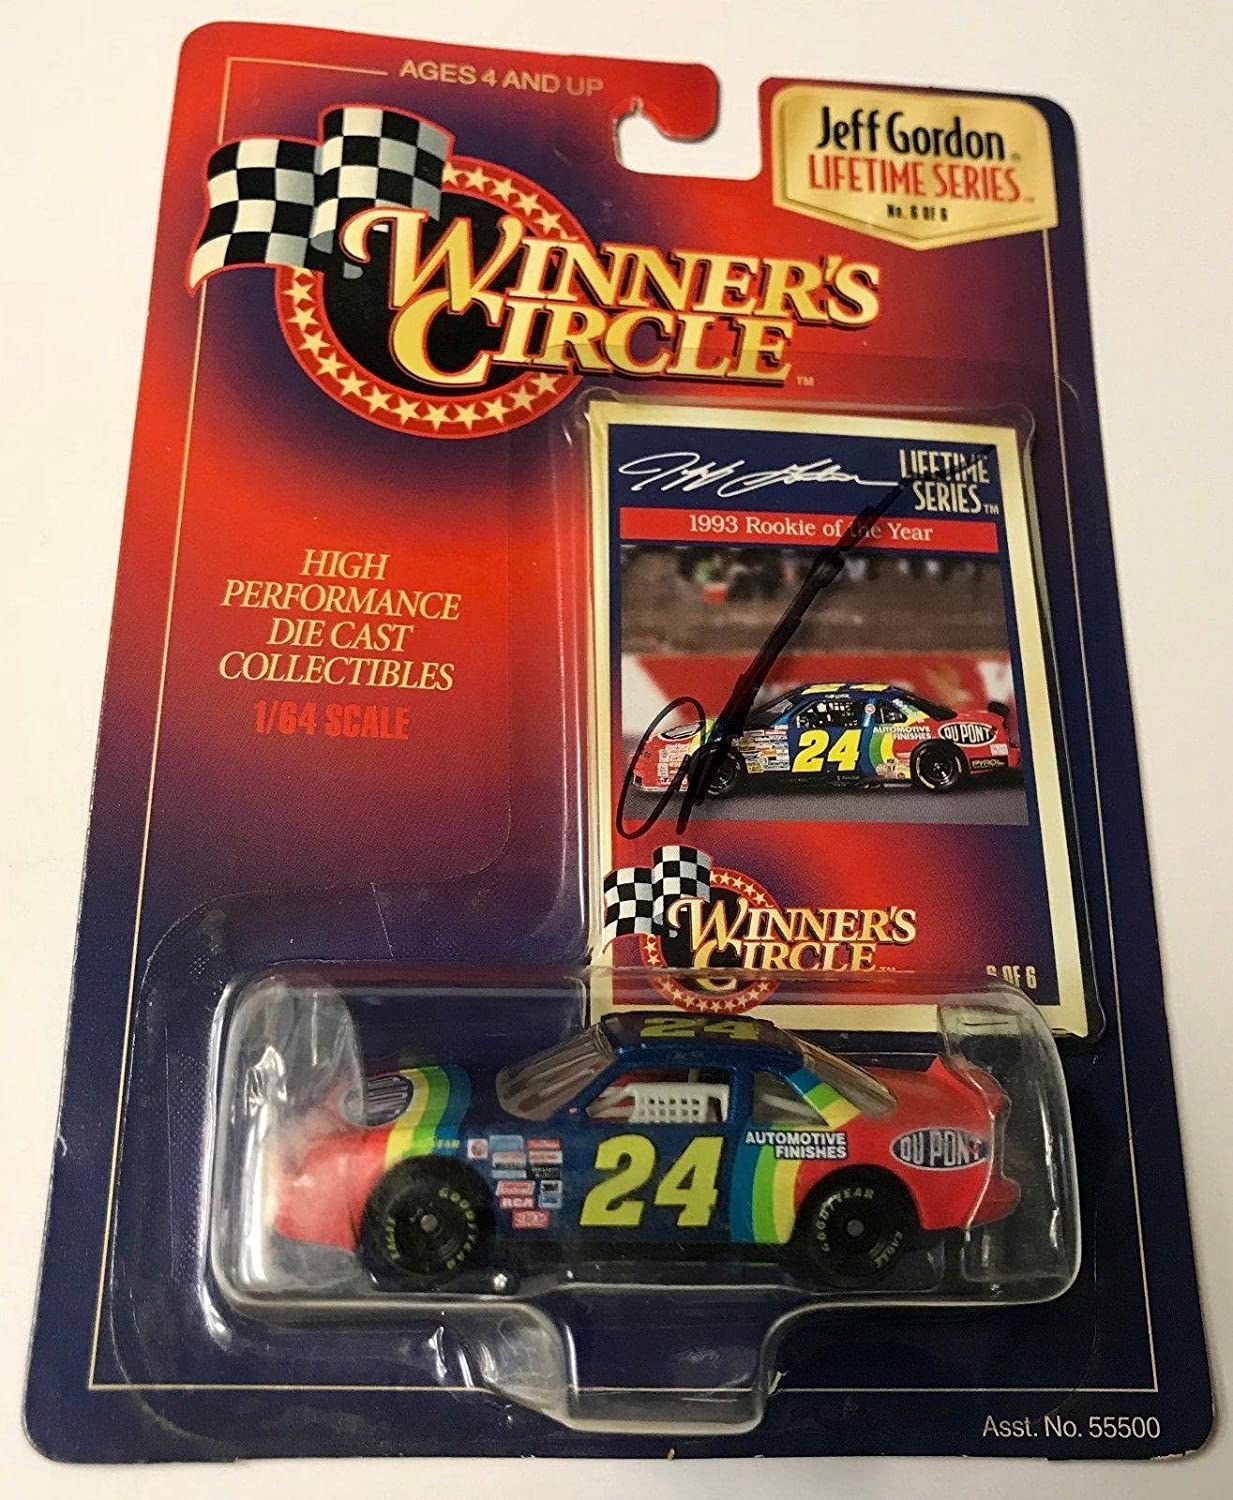 1997 Winners Circle Jeff Gordon 1993 Rookie Of The Year